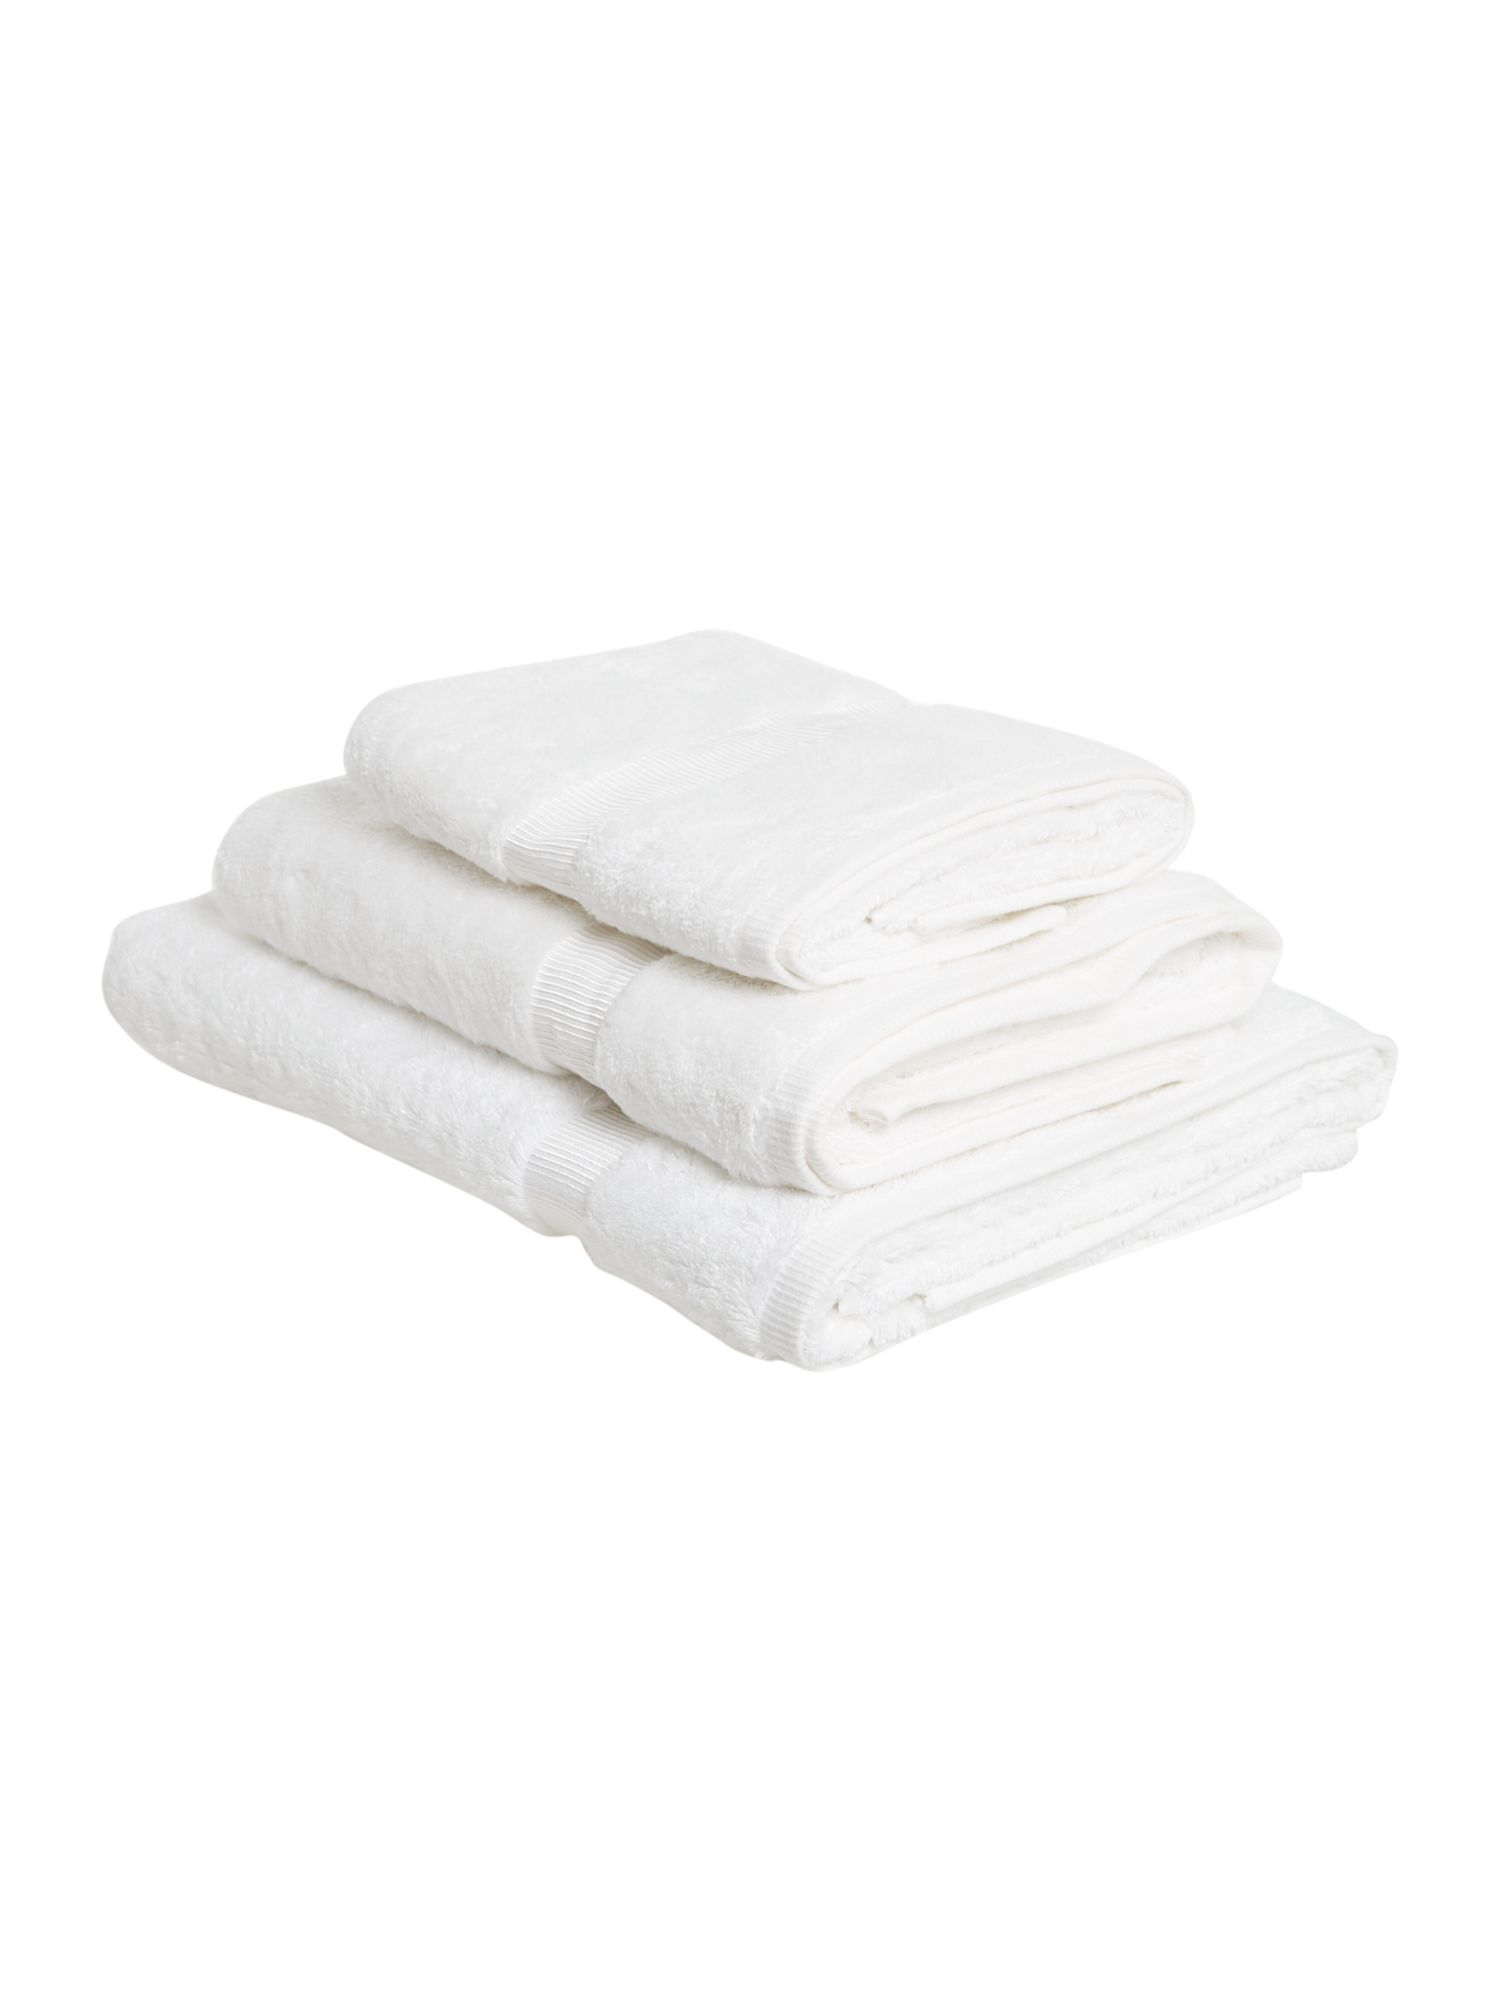 Cotton Modal towels in white